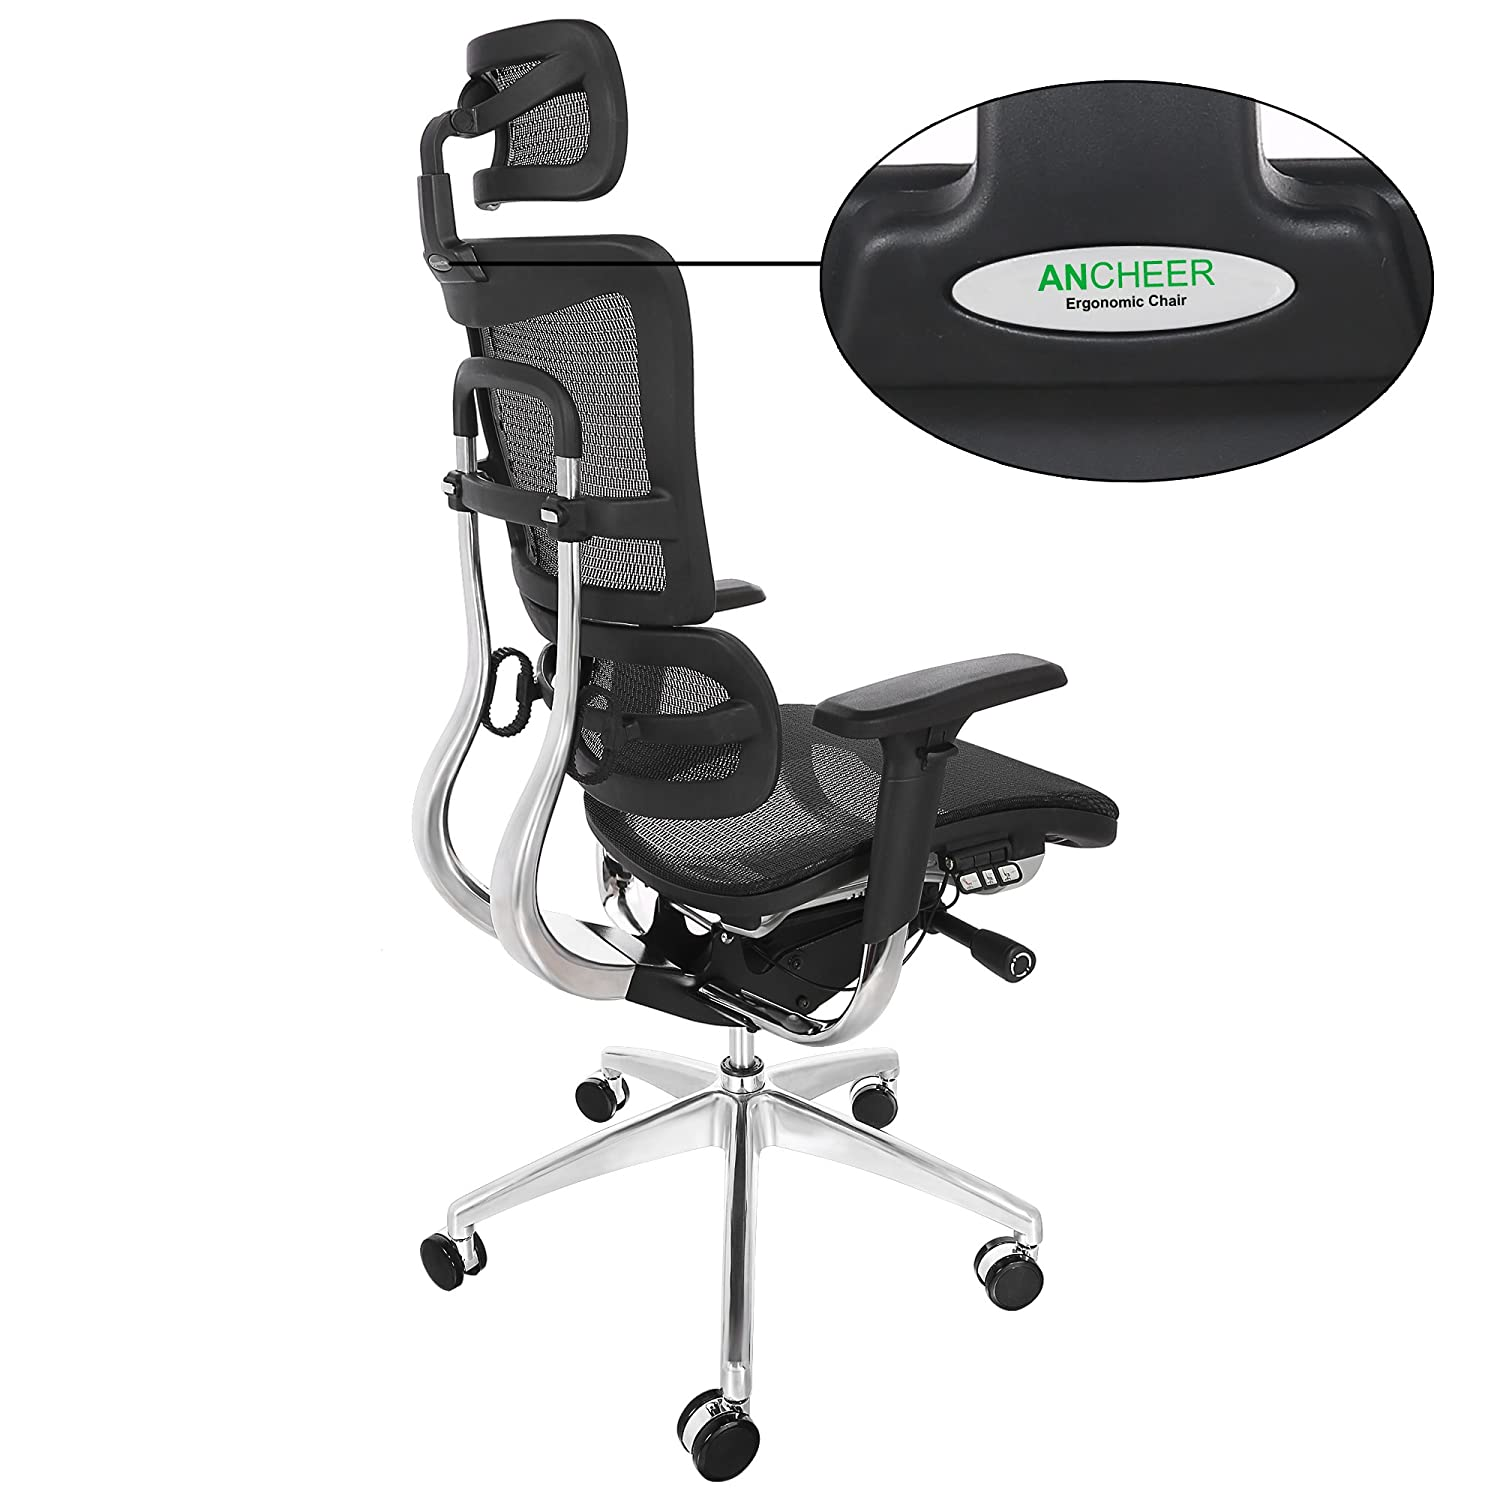 Ancheer Ergonomic Executive Mesh fice Chairs with Adjustable